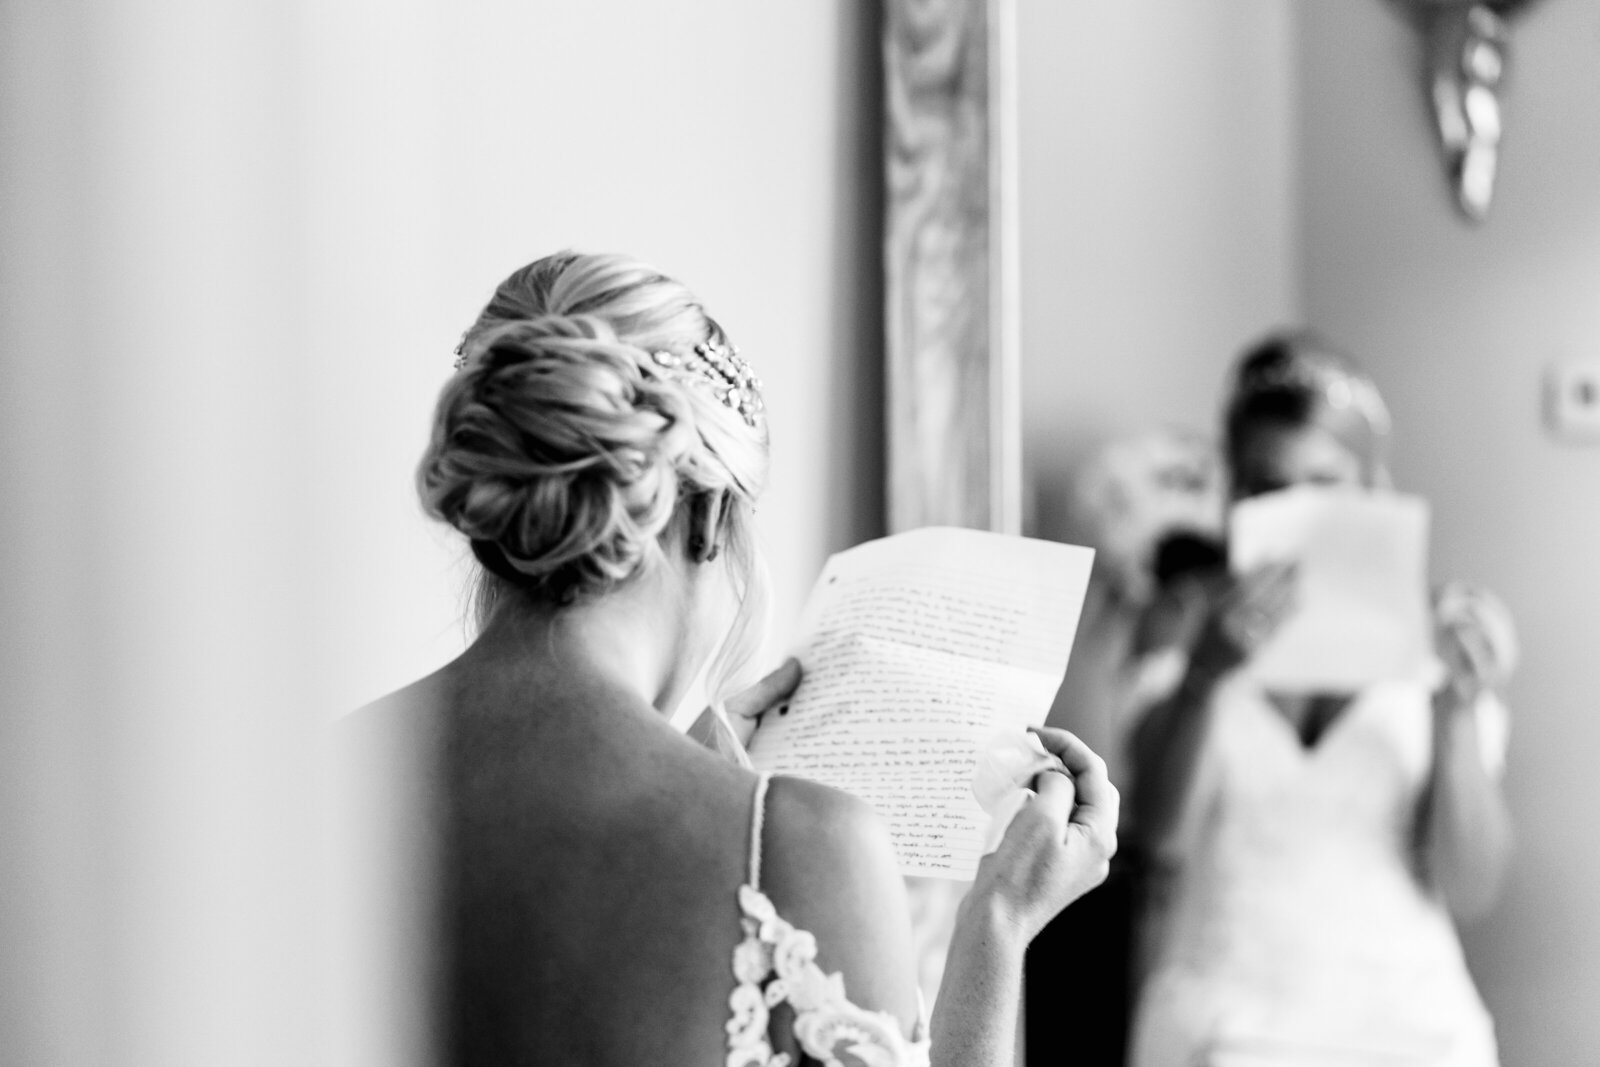 Black and white photo of bride reading note from groom before wedding